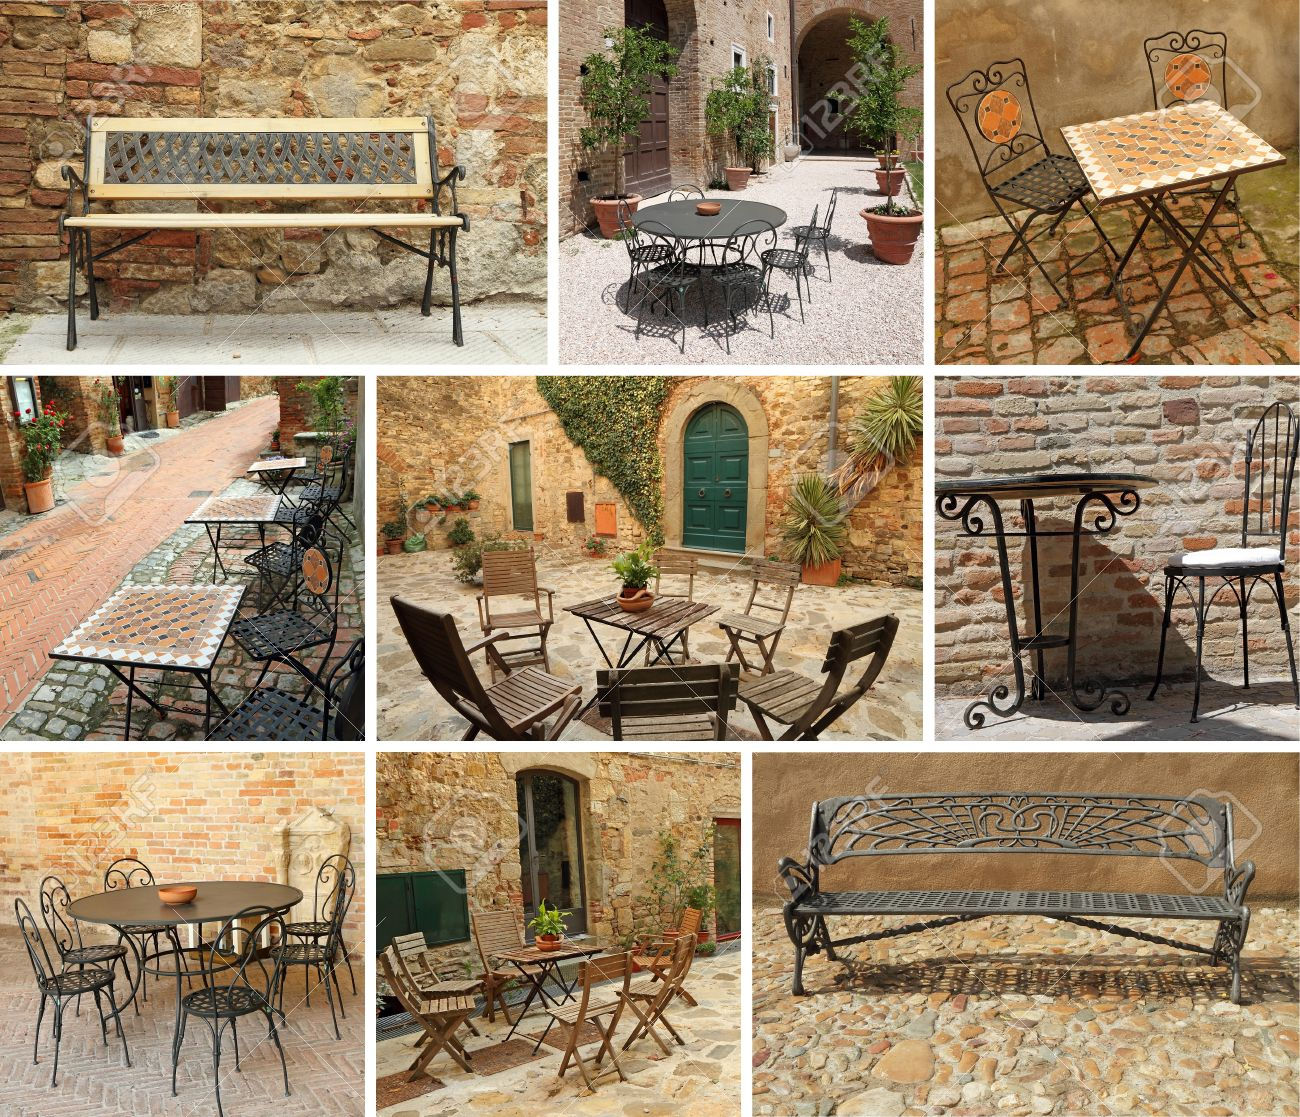 Vintage Garden Furniture Collage, Italy, Europe Stock Photo, Picture ...